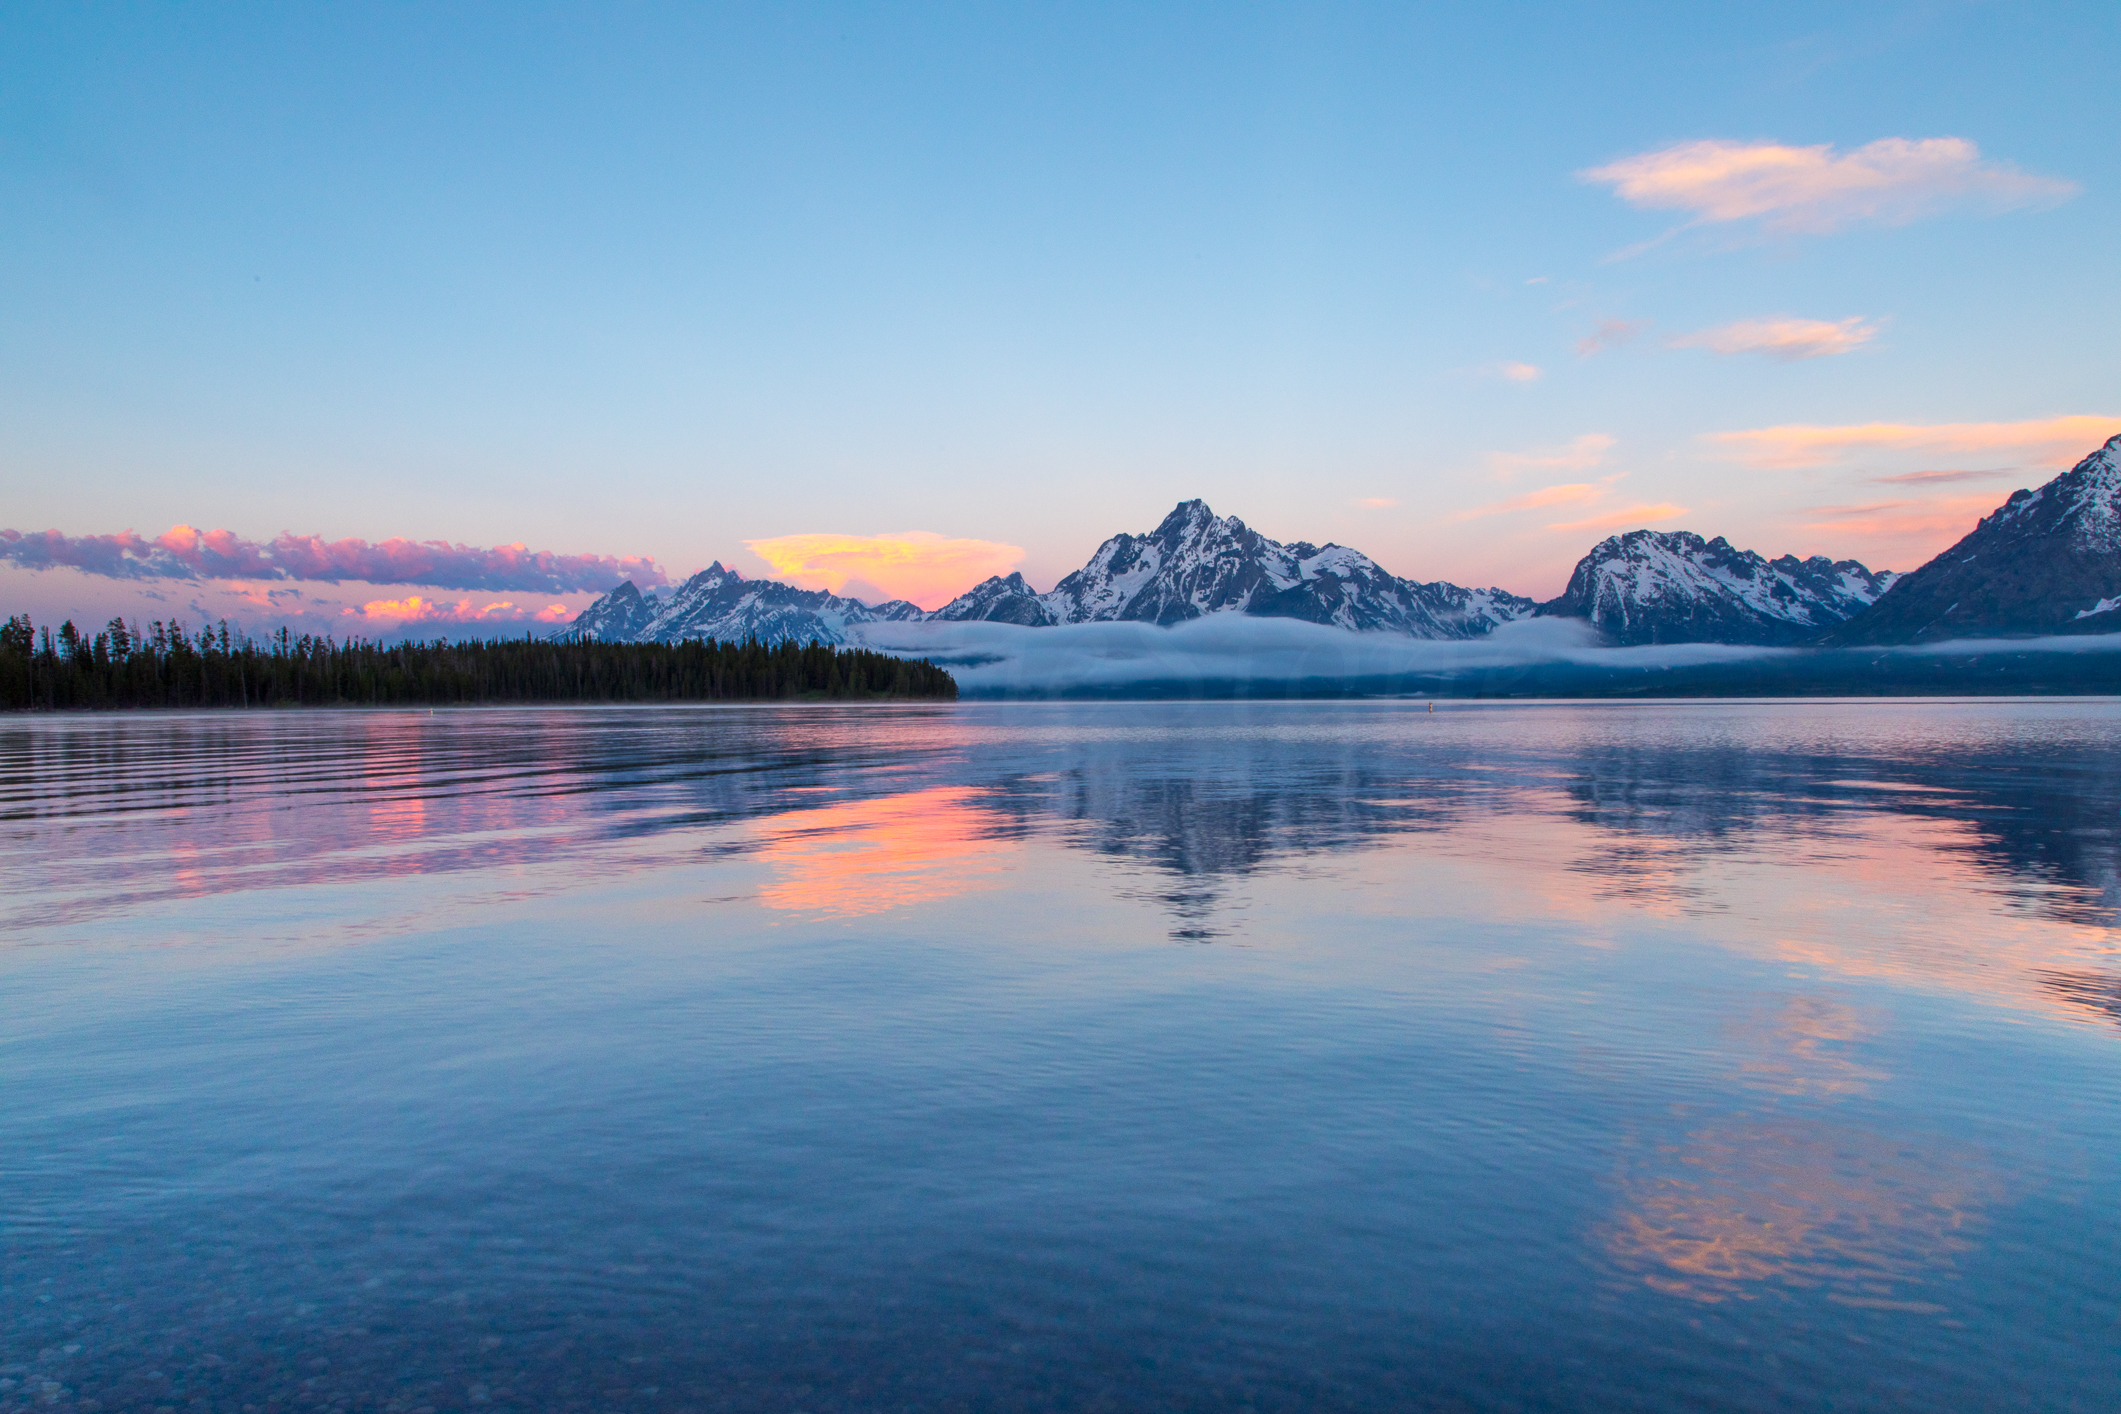 Colter Bay, Image # 3913